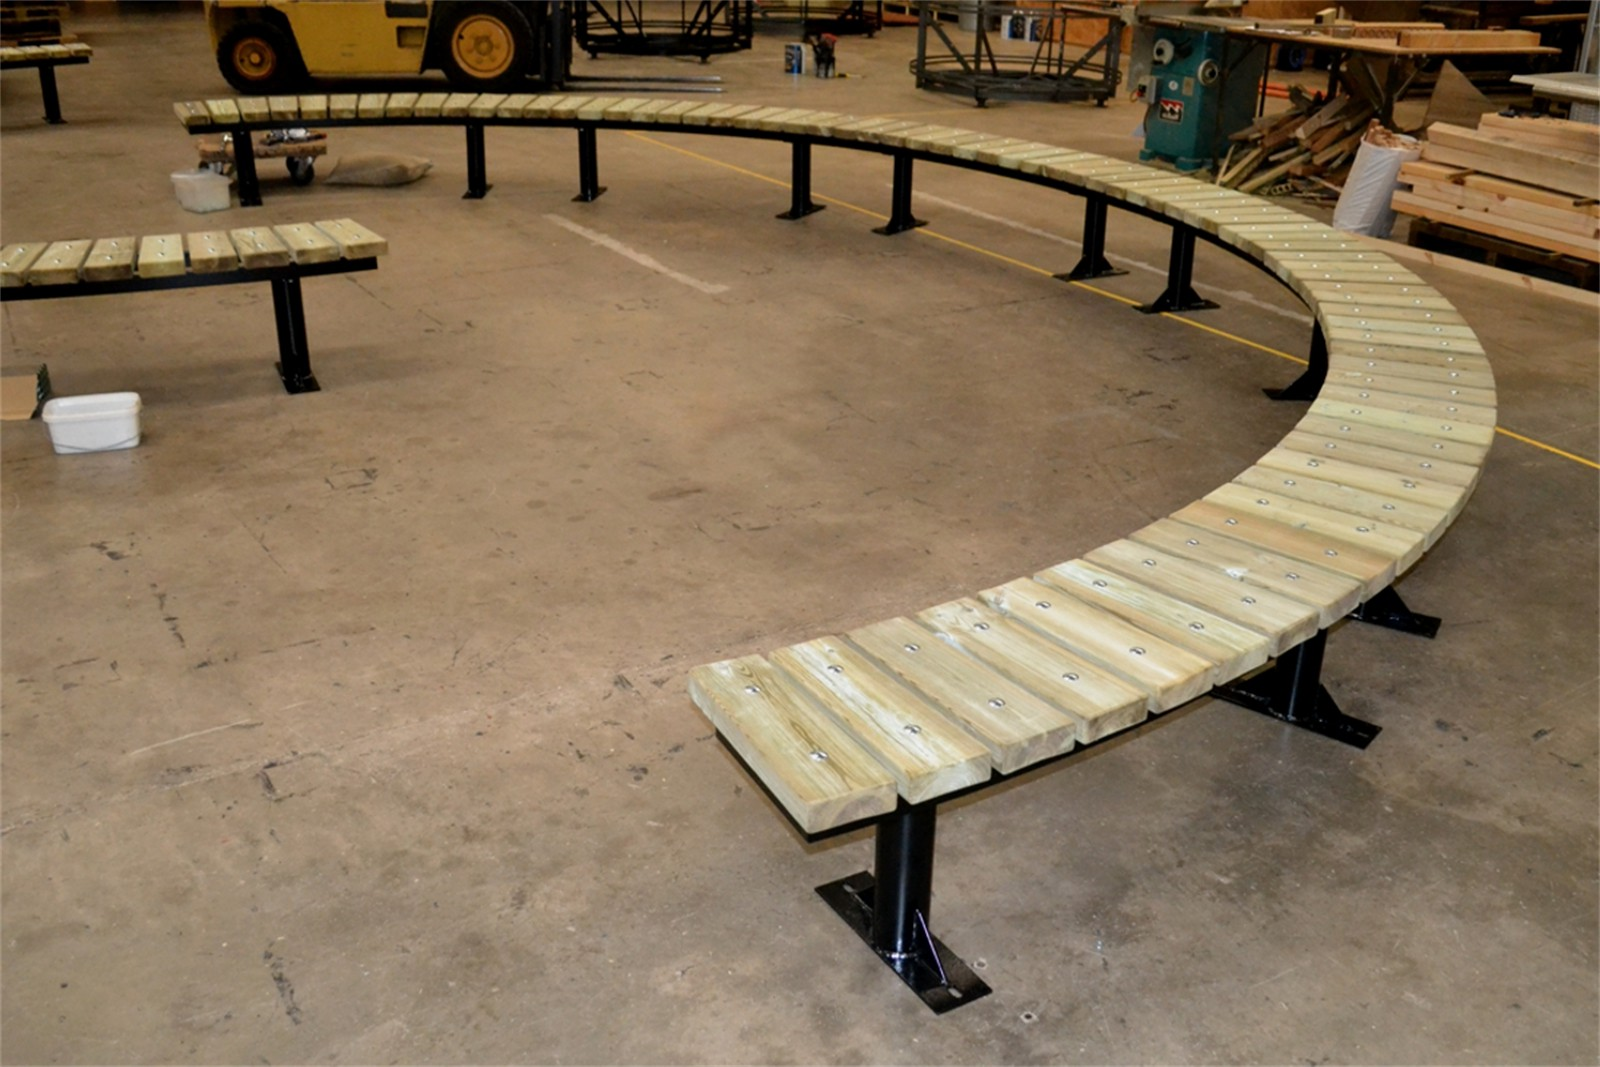 76ssp38 - Spalding long curved bench in manufacture